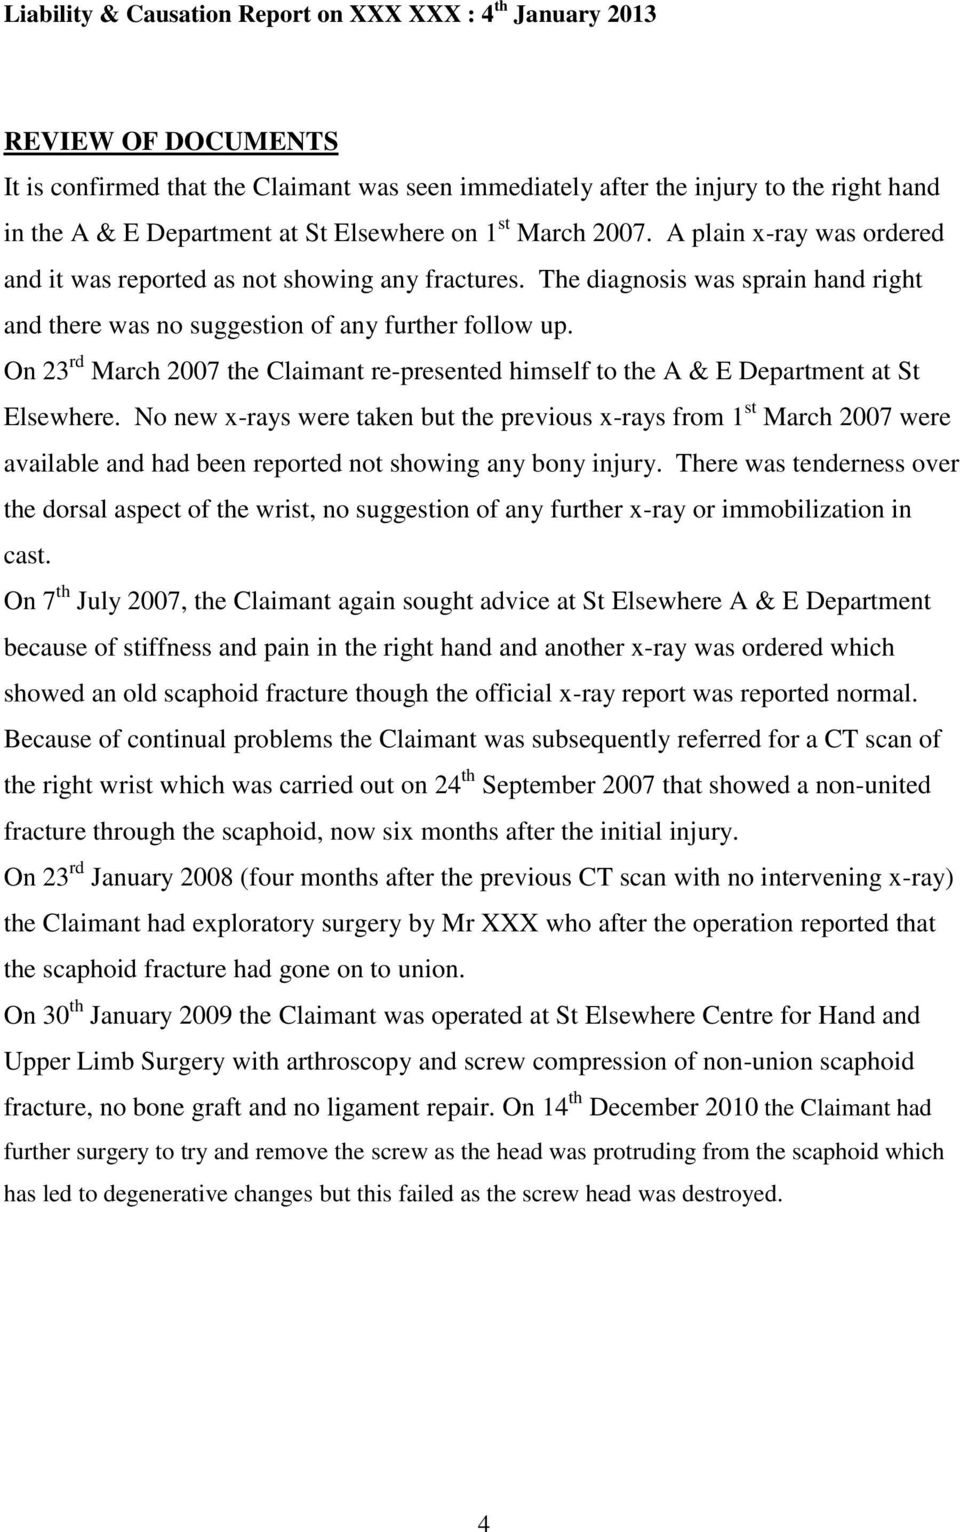 On 23 rd March 2007 the Claimant re-presented himself to the A & E Department at St Elsewhere.